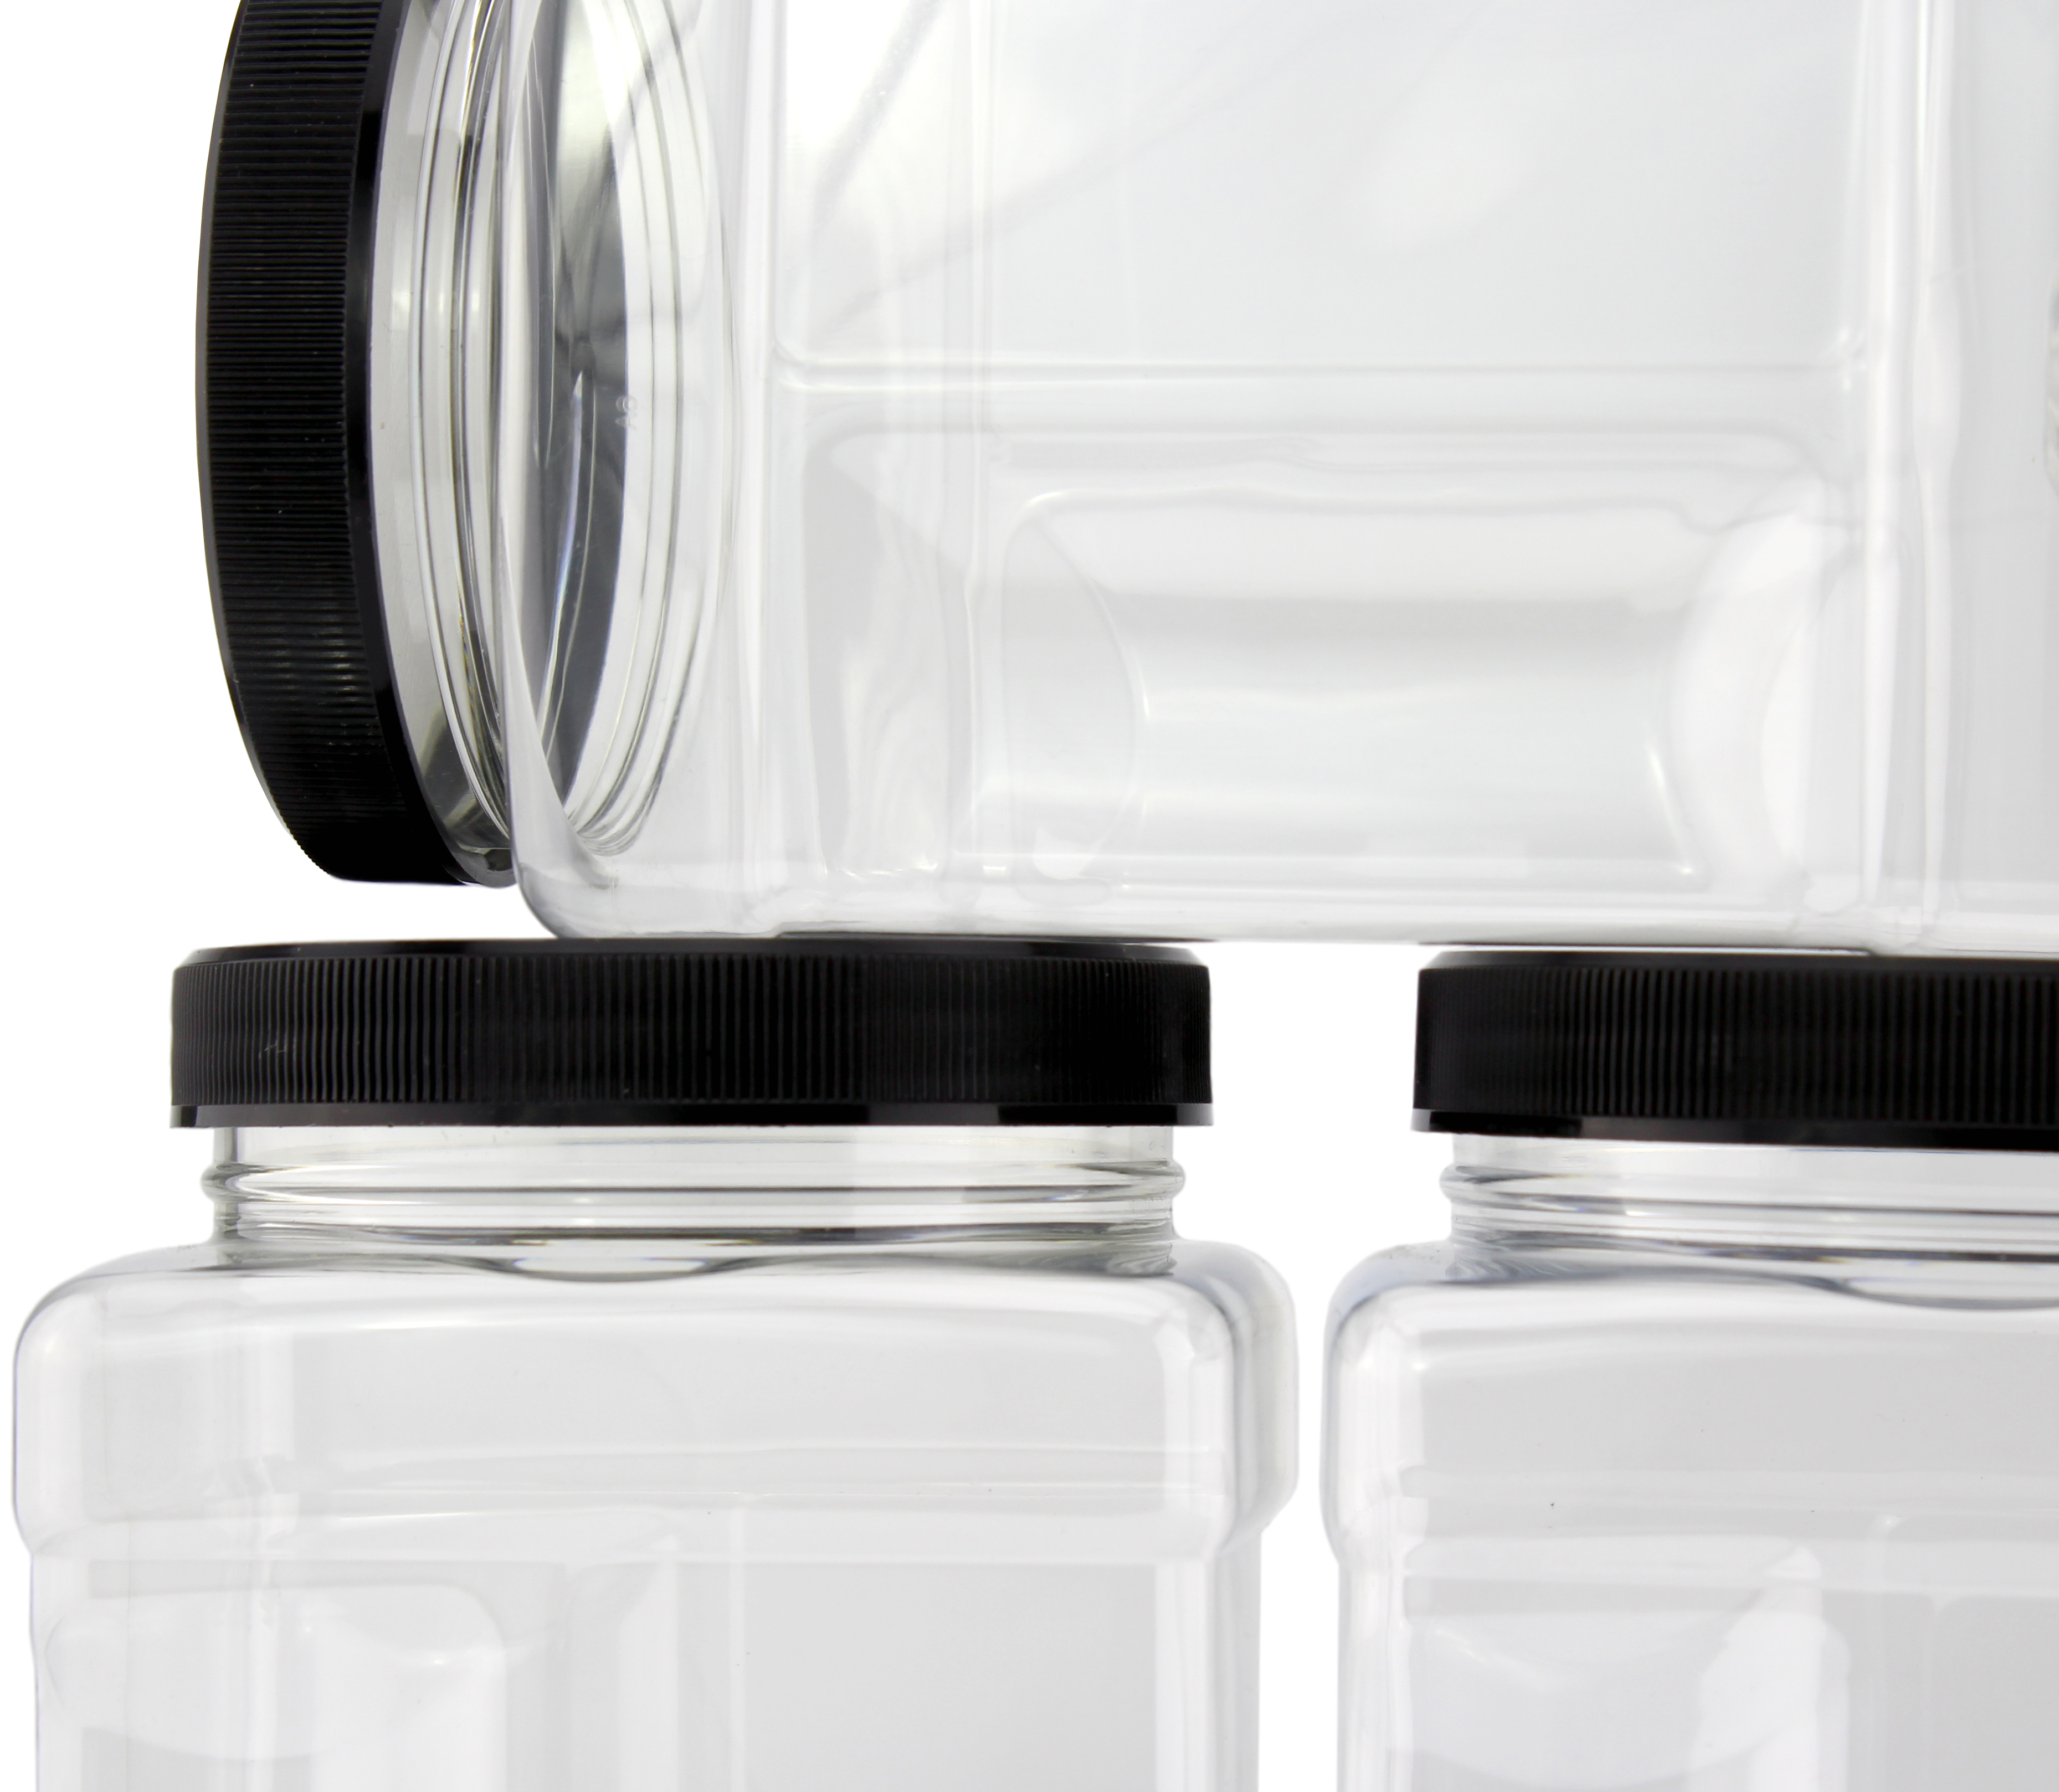 B078SF8L4D - 32-Ounce Square Plastic Jars (4-Pack) 1